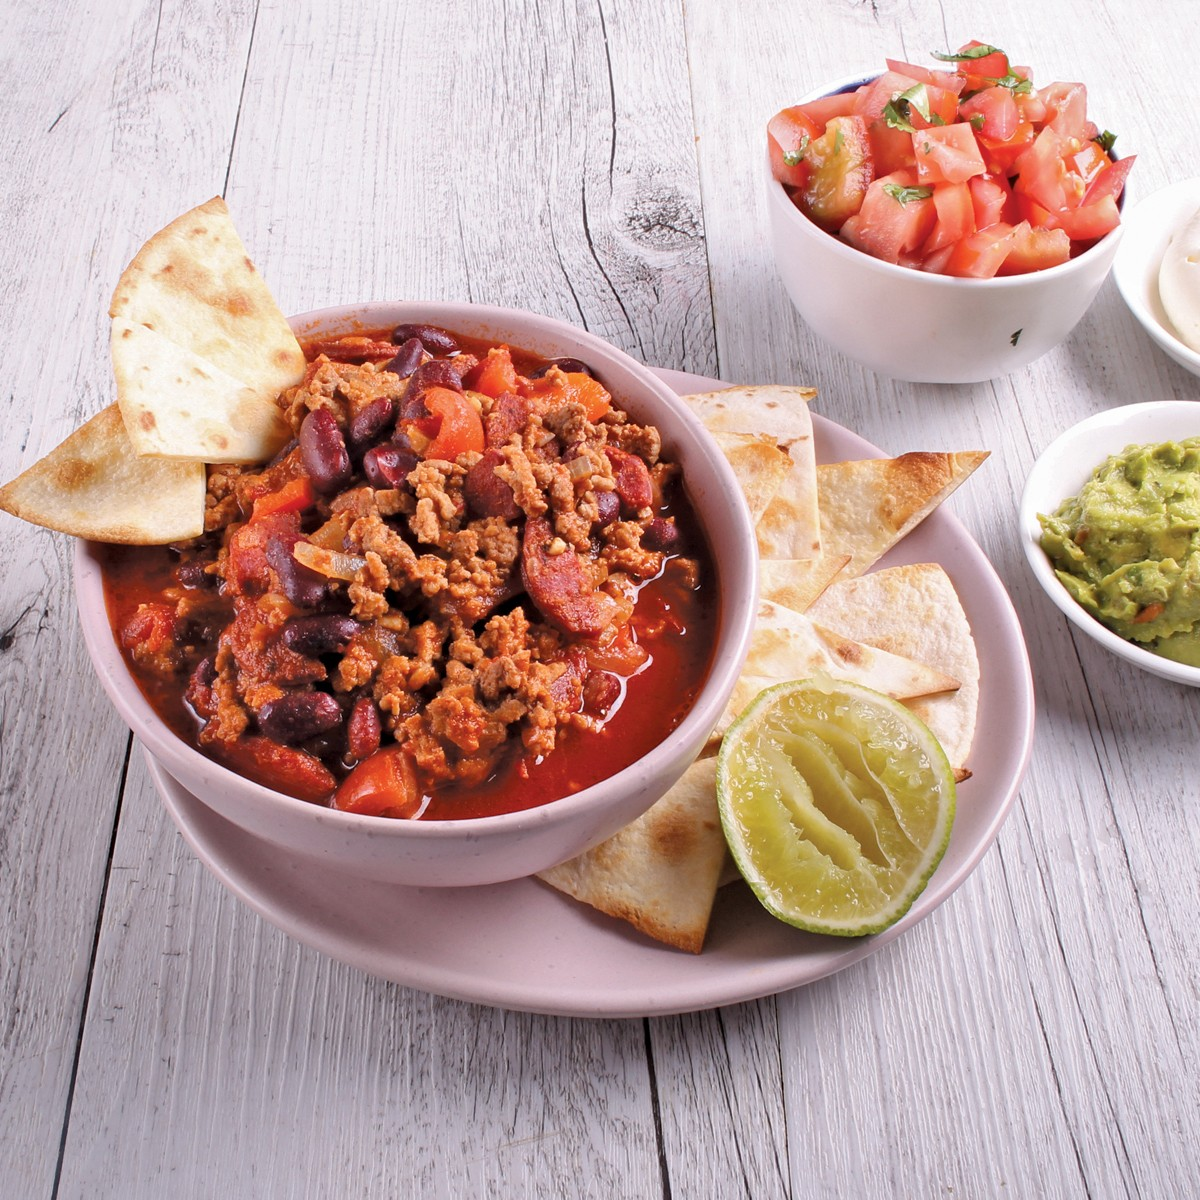 Pork Chili Con Carne